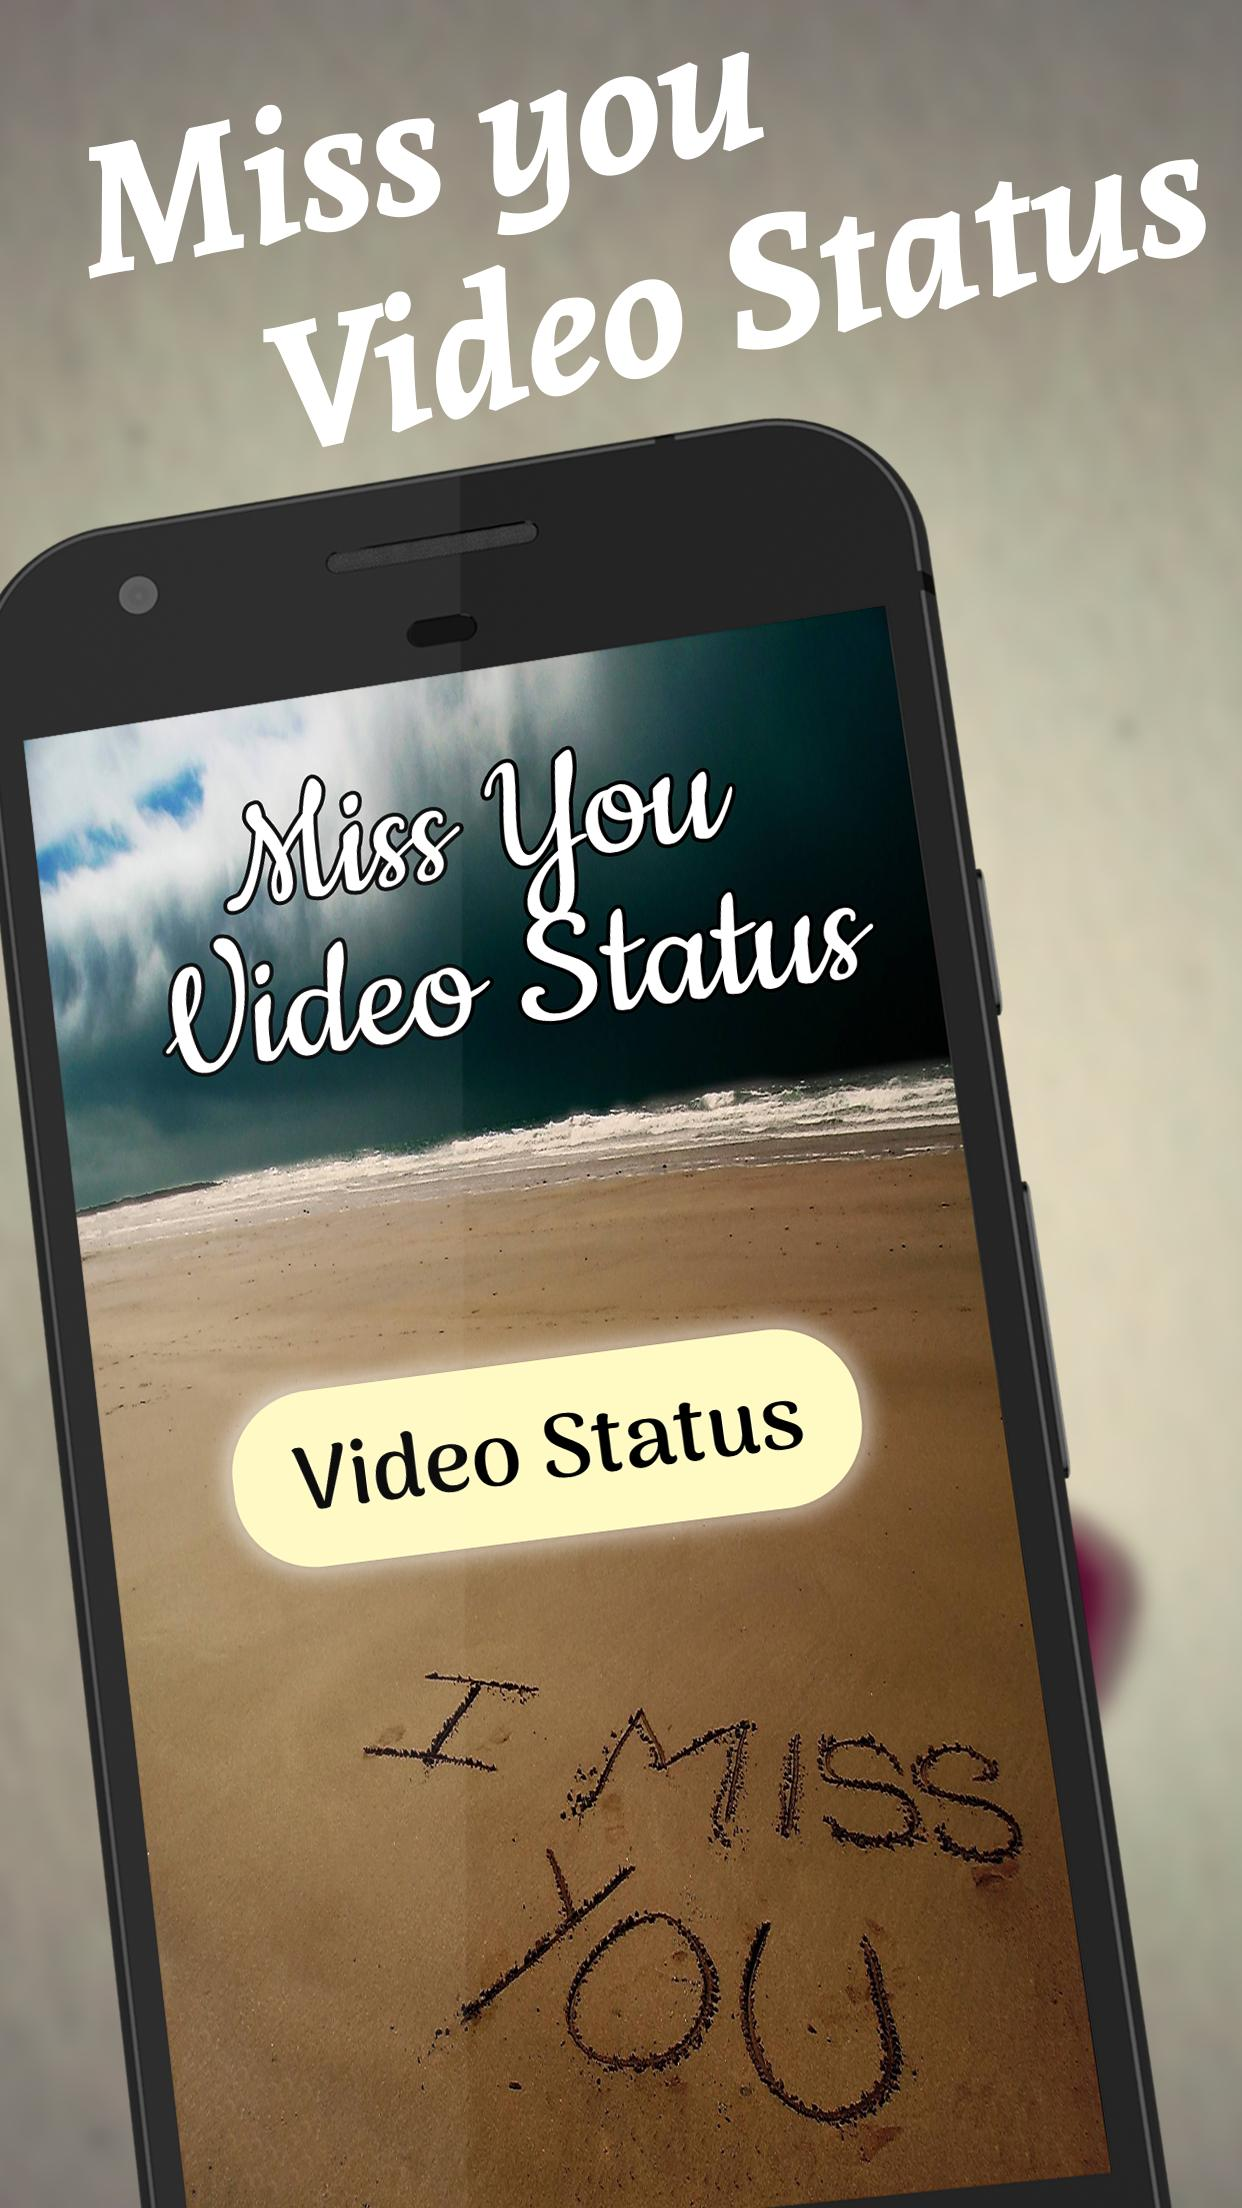 Miss You video status for Android - APK Download